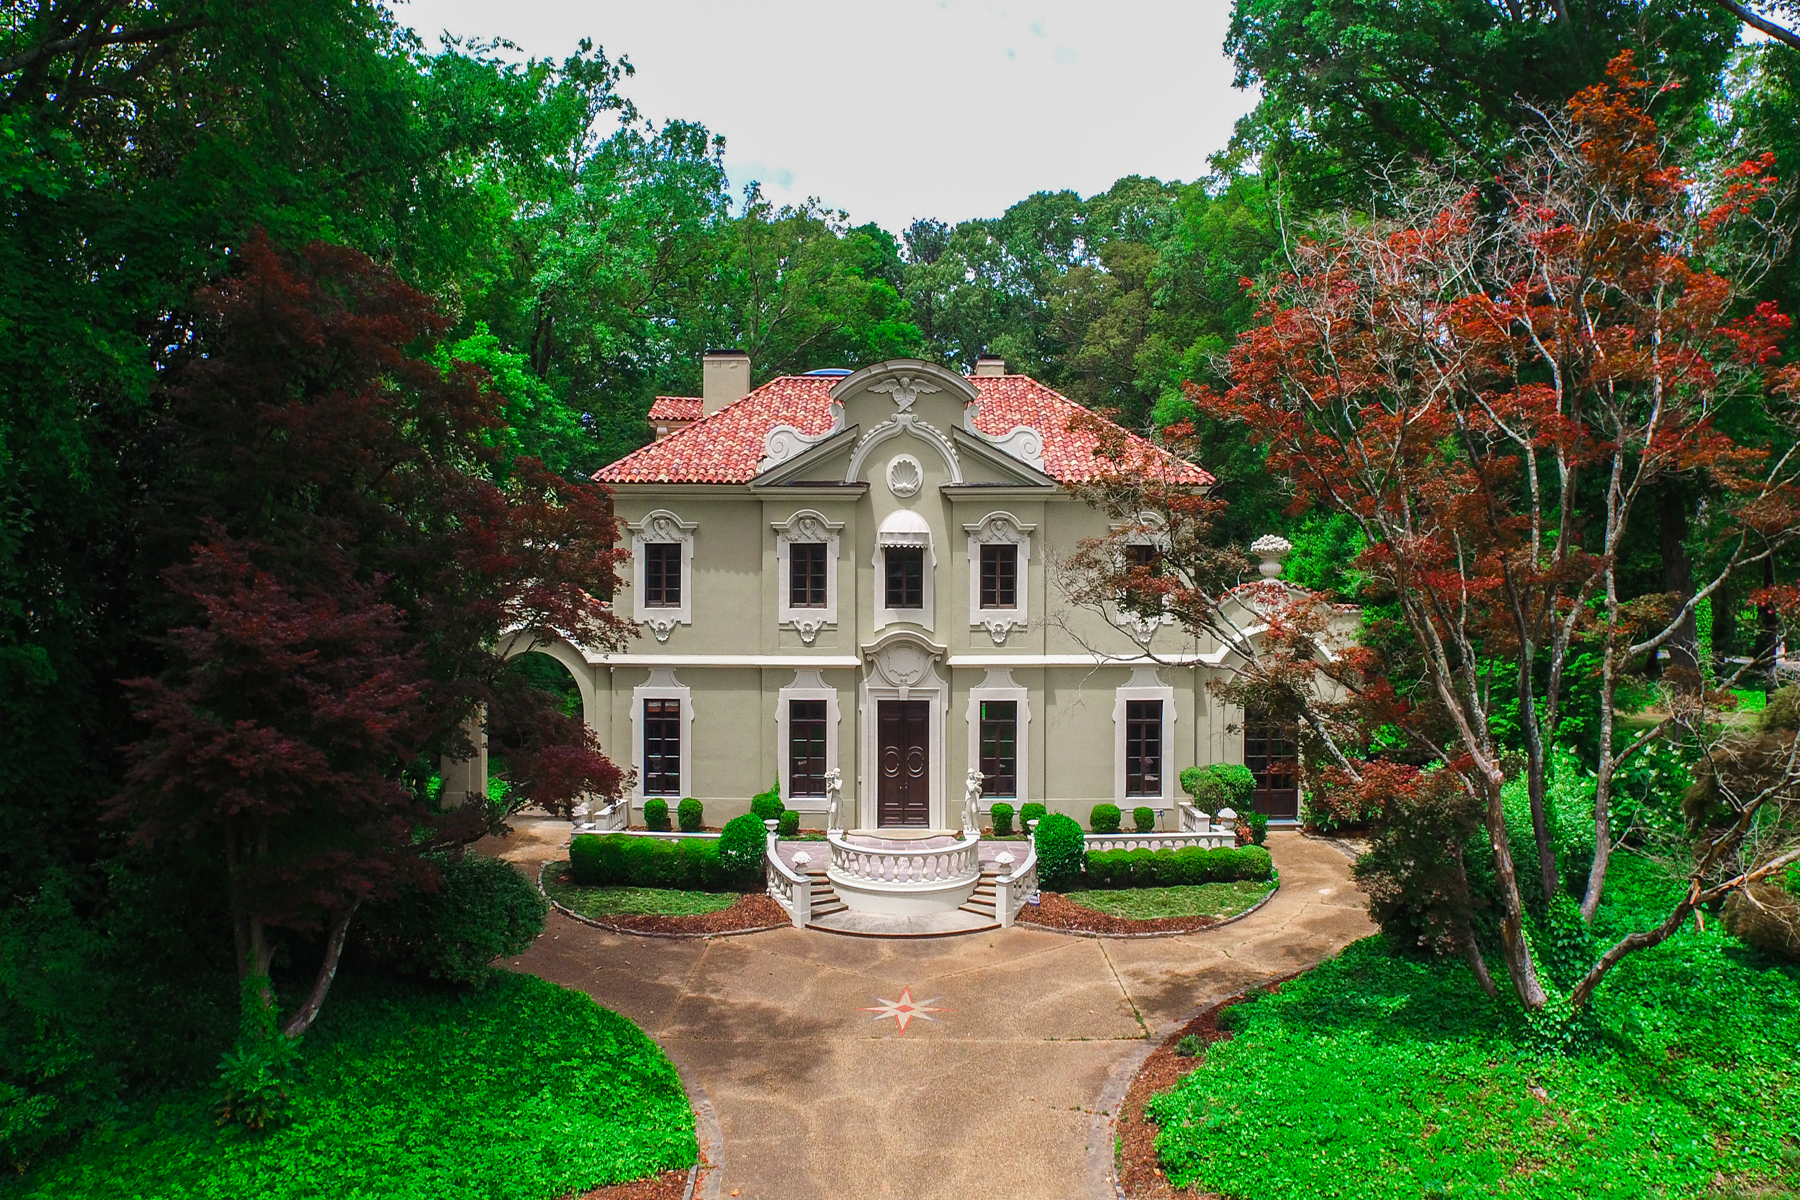 Частный односемейный дом для того Продажа на Classic Elegance In Atlanta's Finest Neighborhood 541 W Paces Ferry Road NW Buckhead, Atlanta, Джорджия, 30305 Соединенные Штаты